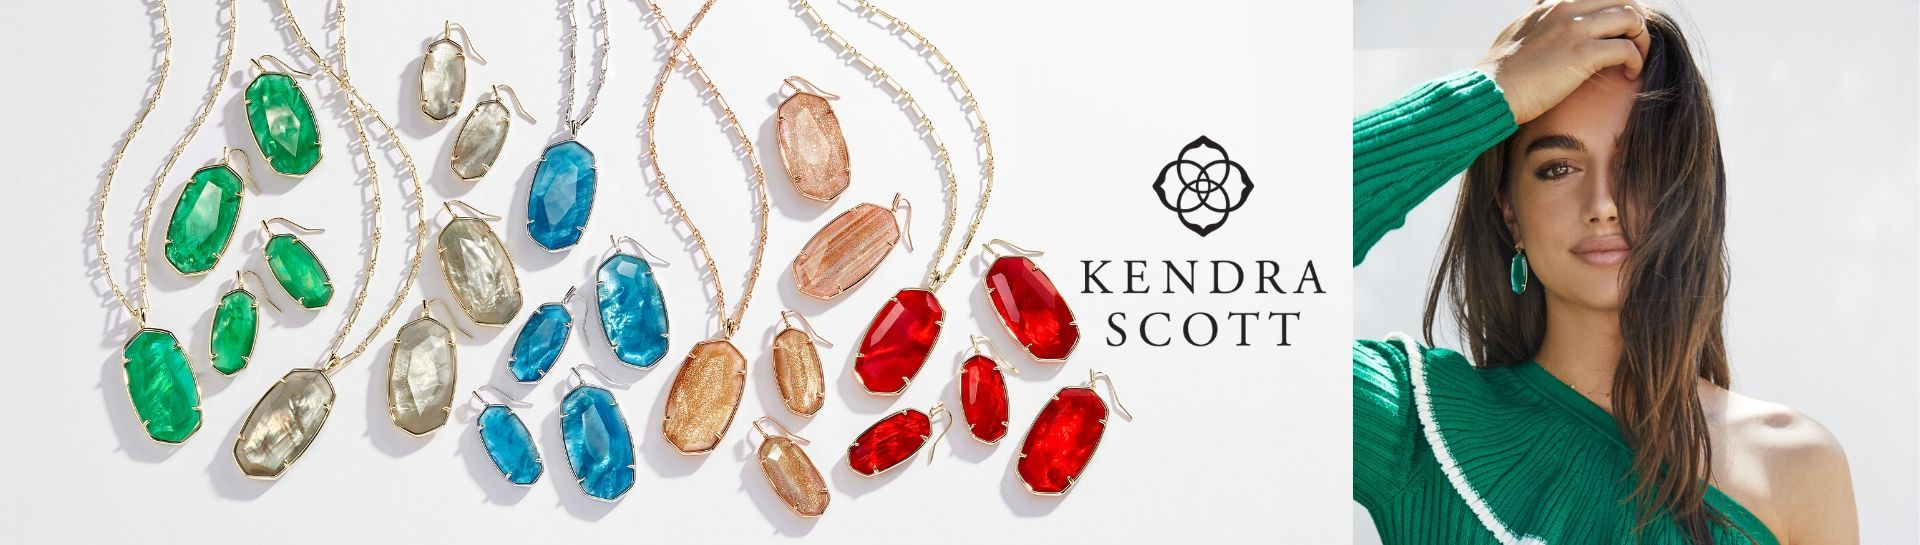 Rome Jewelers Kendra Scott